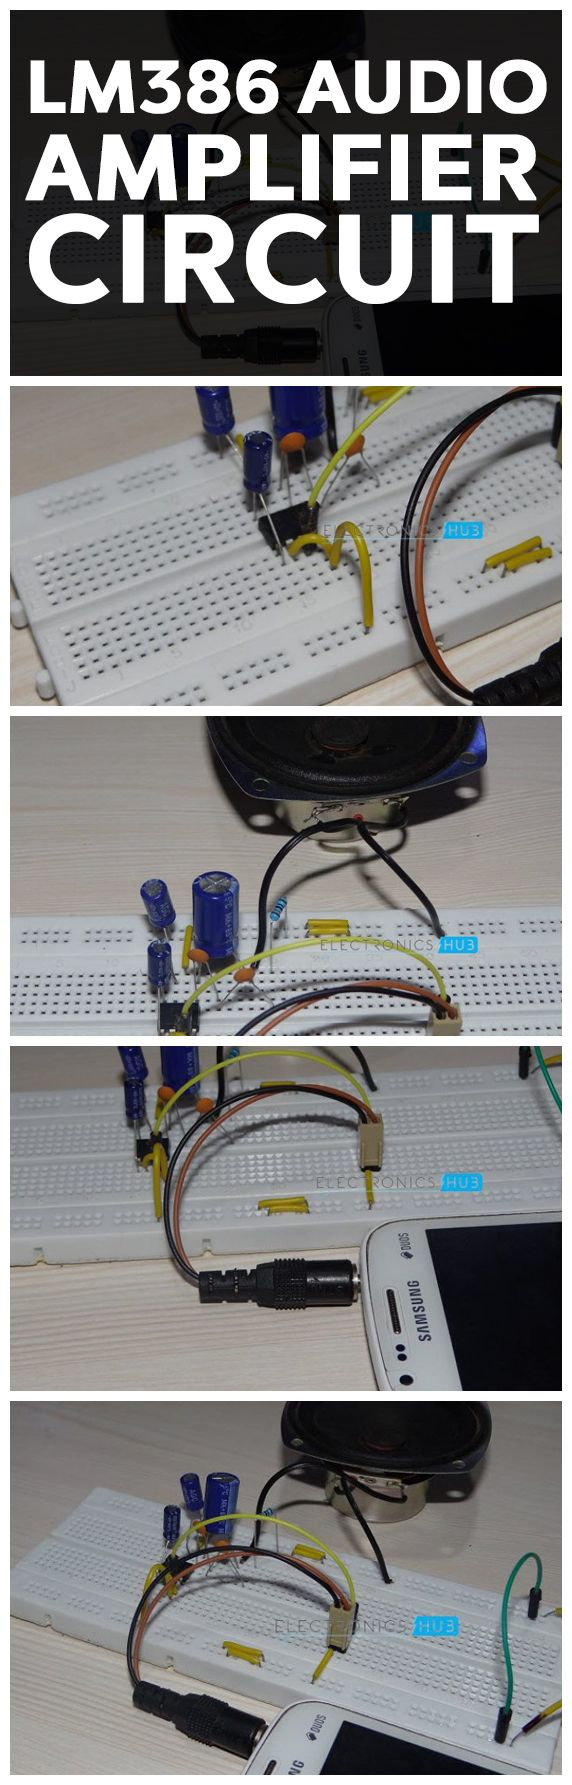 36 Best Projects Ideas Images On Pinterest A Professional Craft Lm386 Stereo Amplifier Circuit In This Project We Will Show You How To Build Audio